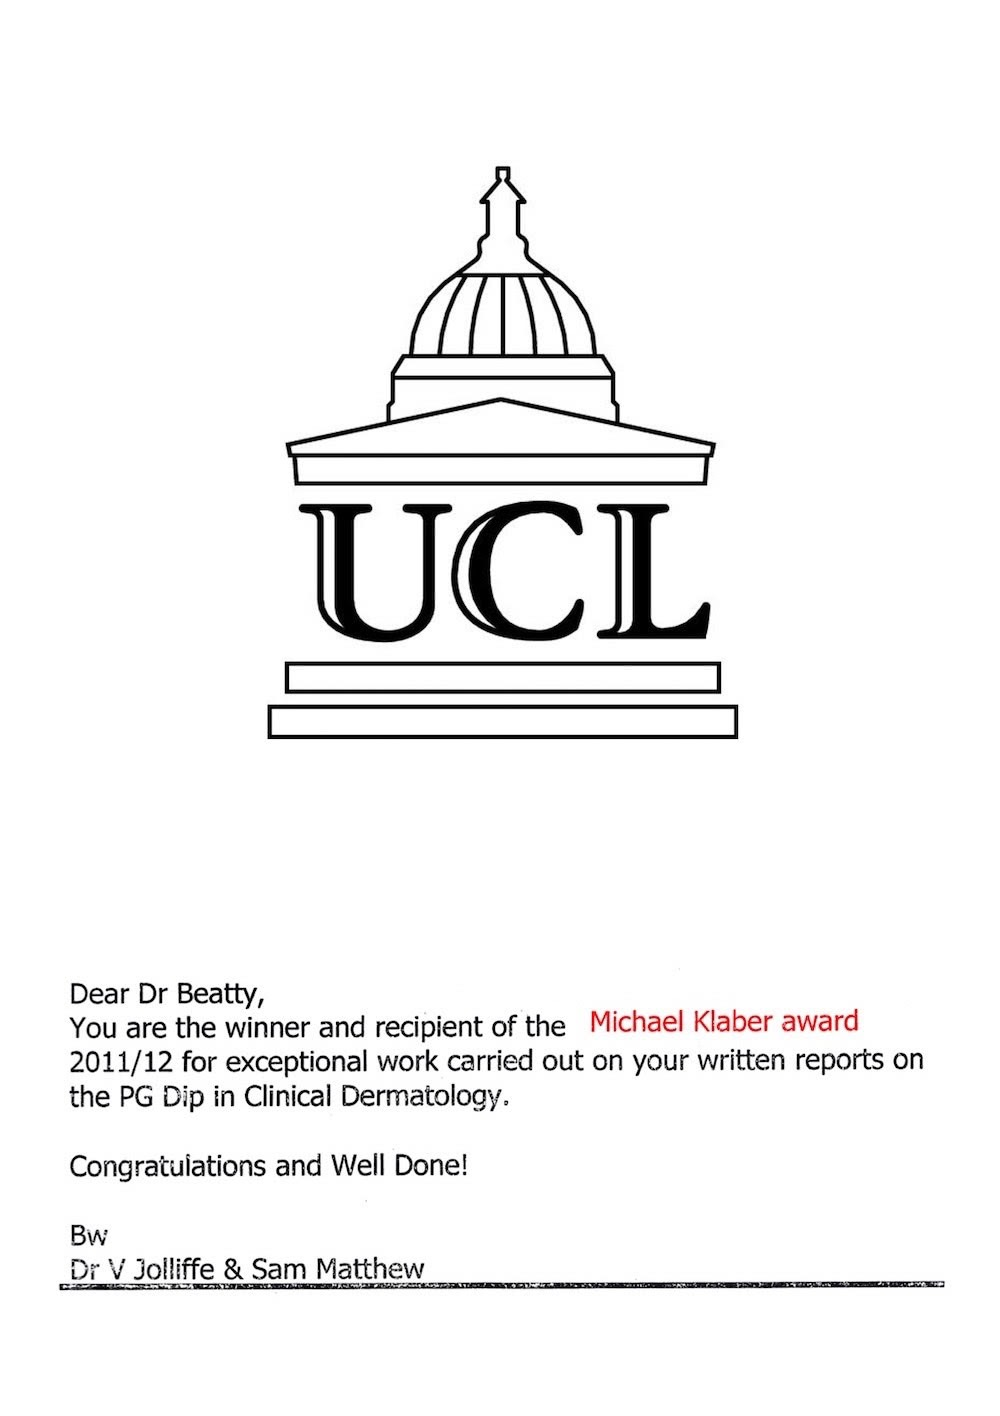 Michael Klaber Prize, university of london, dermatology diploma